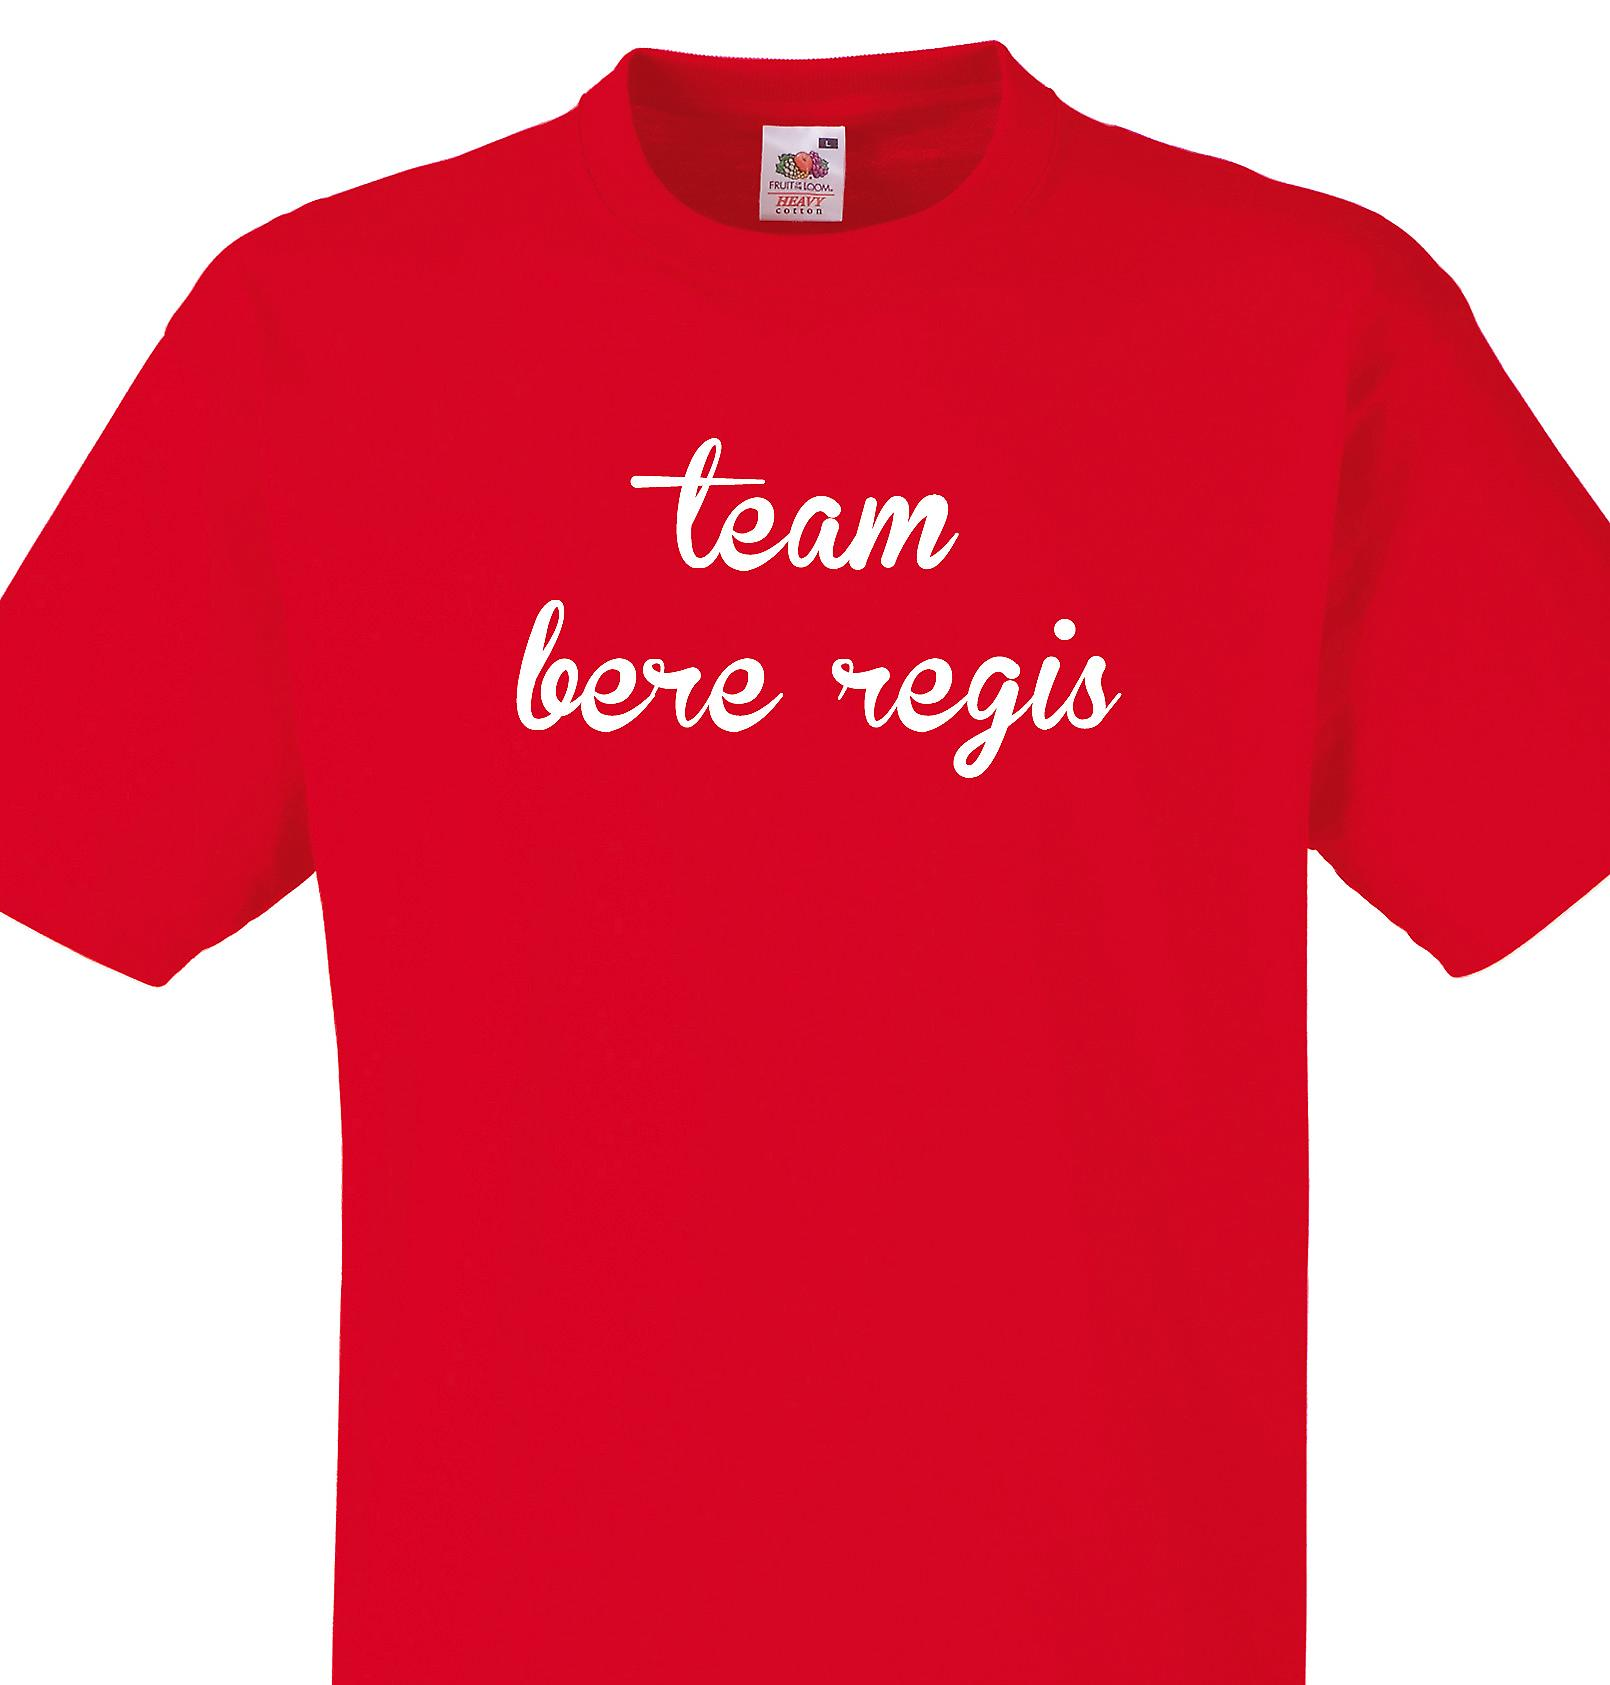 Team Bere regis Red T shirt